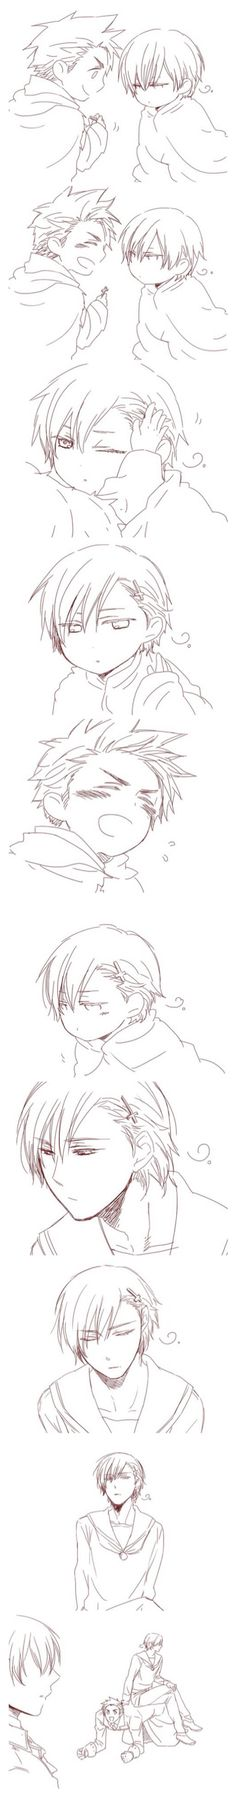 Denmark and Norway. Awwww [Hetalia] DEANNY IS JUST SO HAPPY LIKE A PUPPY I AM DYING